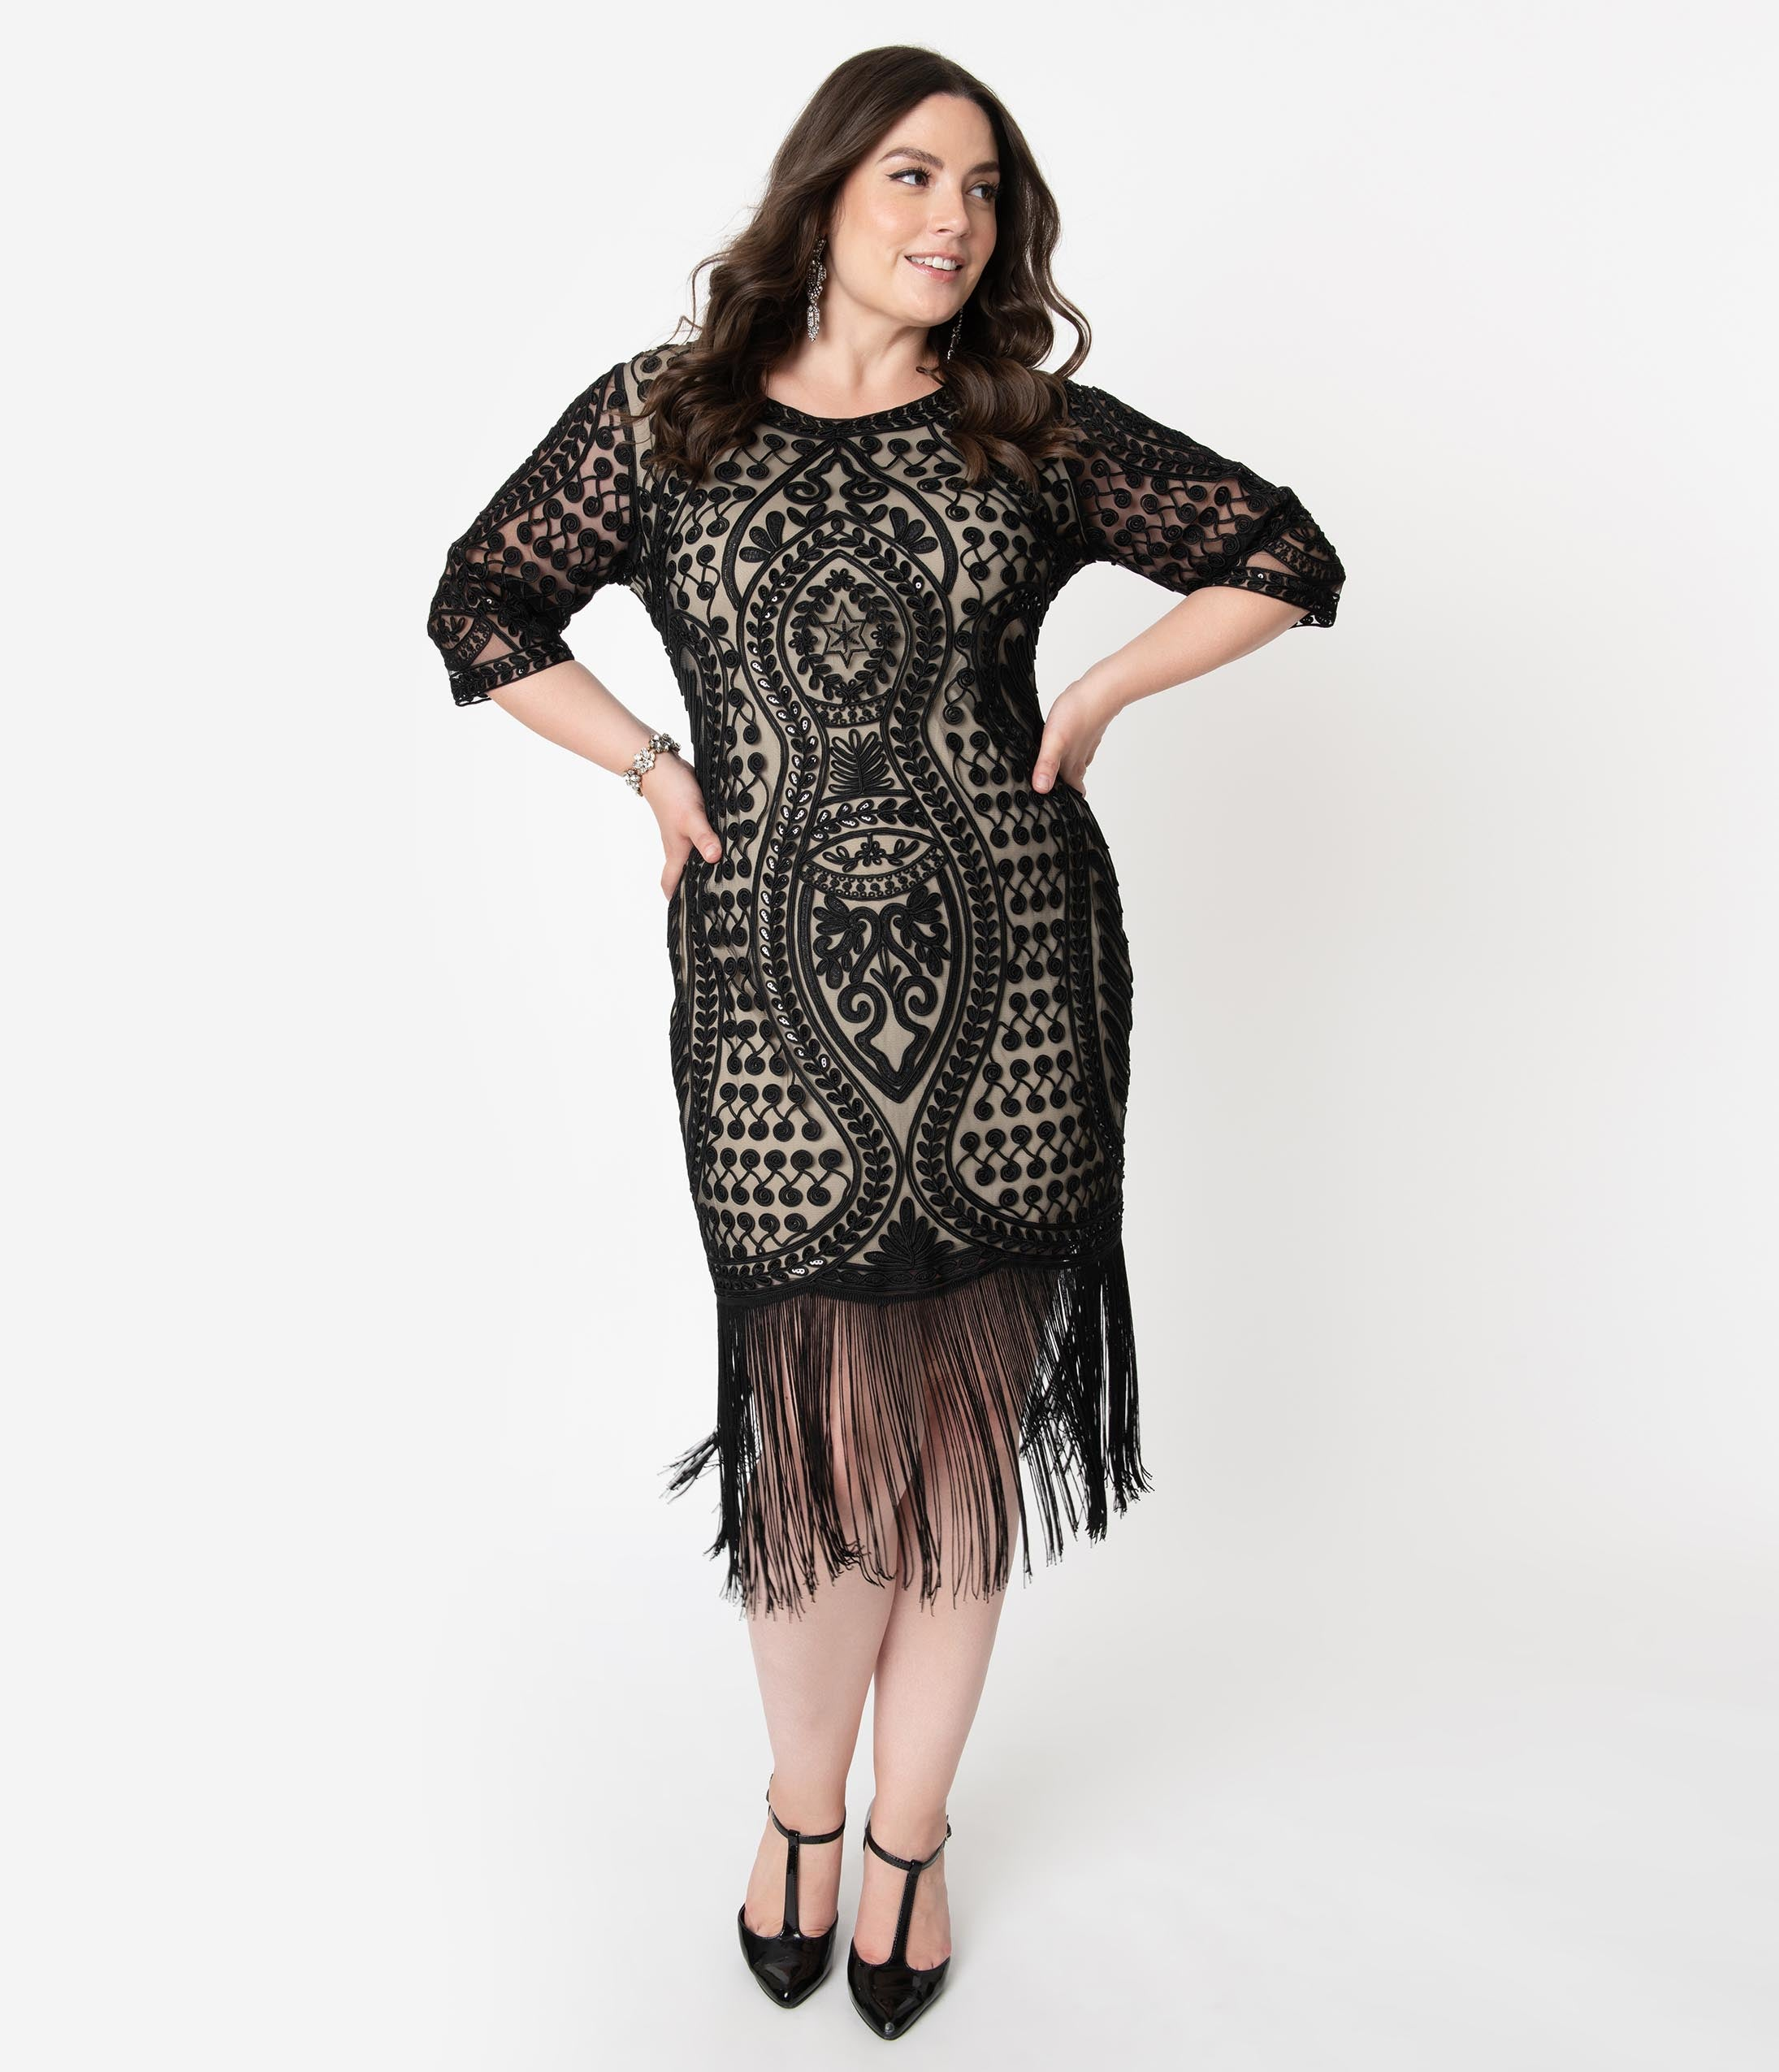 1920s Plus Size Flapper Dresses, Gatsby Dresses, Flapper Costumes Unique Vintage Plus Size Beige  Black Embroidered Deco Eugenia Fringe Flapper Dress $128.00 AT vintagedancer.com